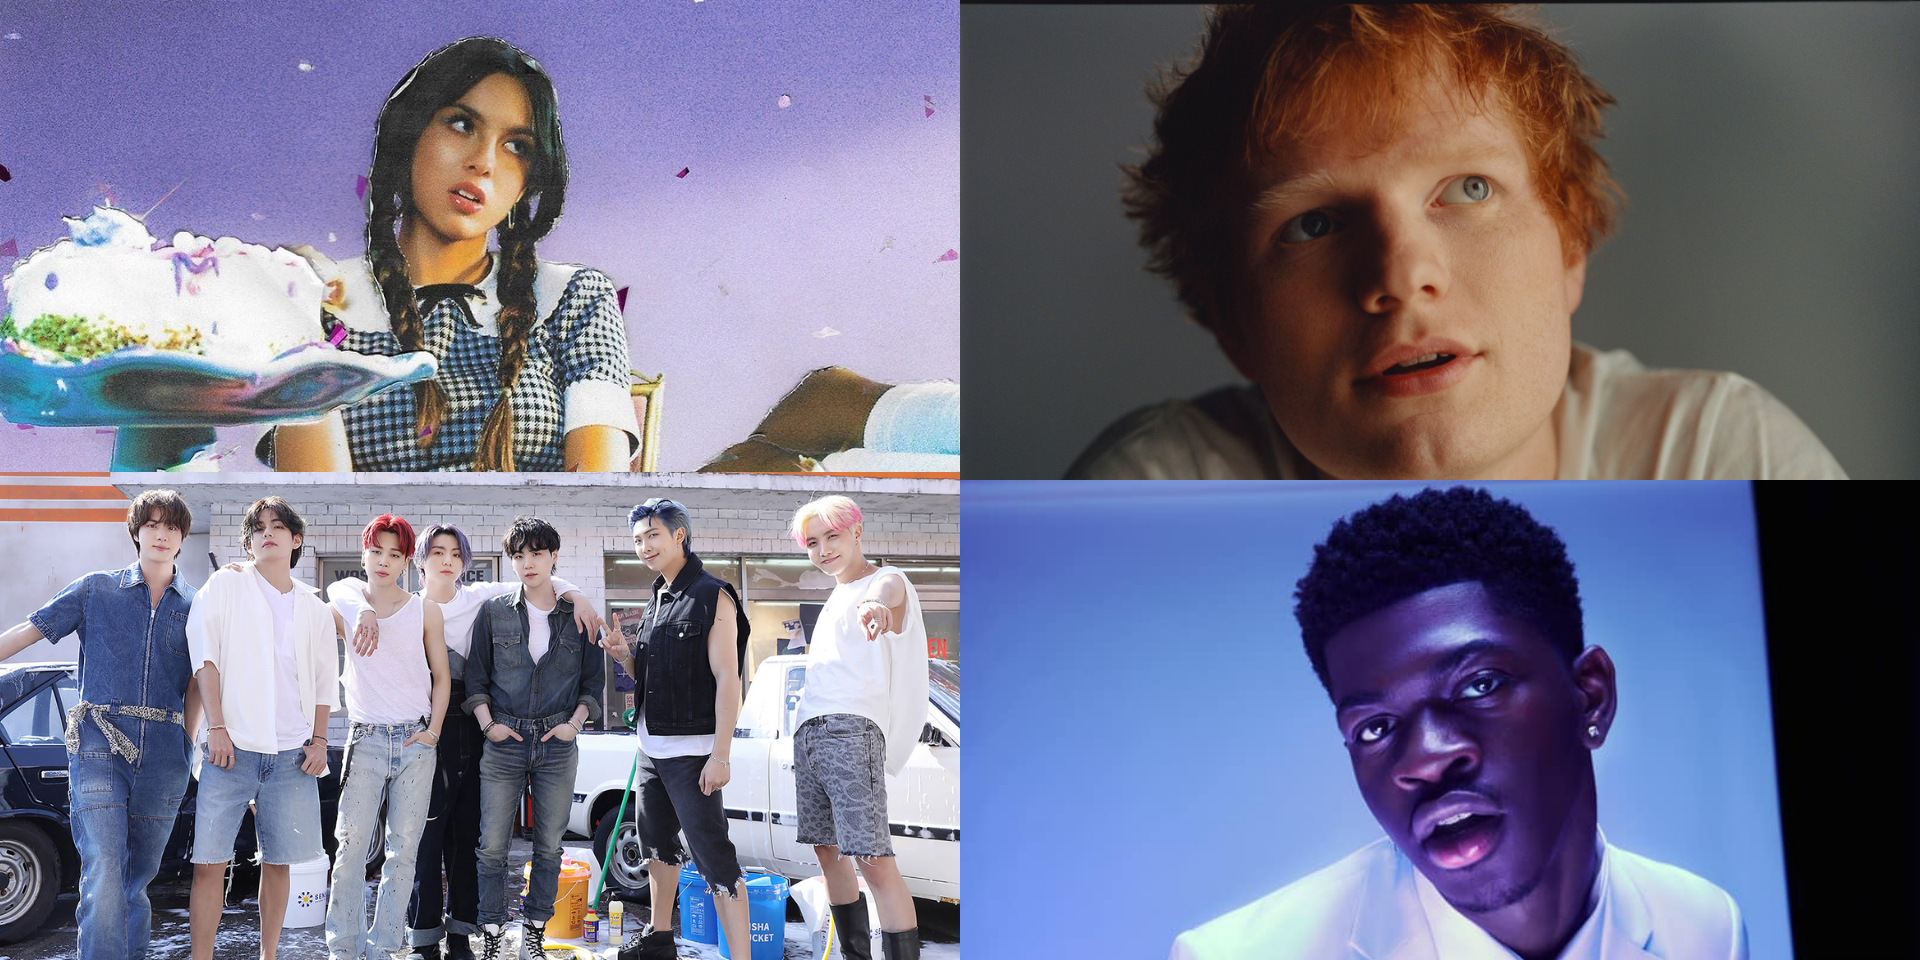 Hits by Olivia Rodrigo, BTS, Lil Nas X, Ed Sheeran, and more are Spotify's top songs of the summer